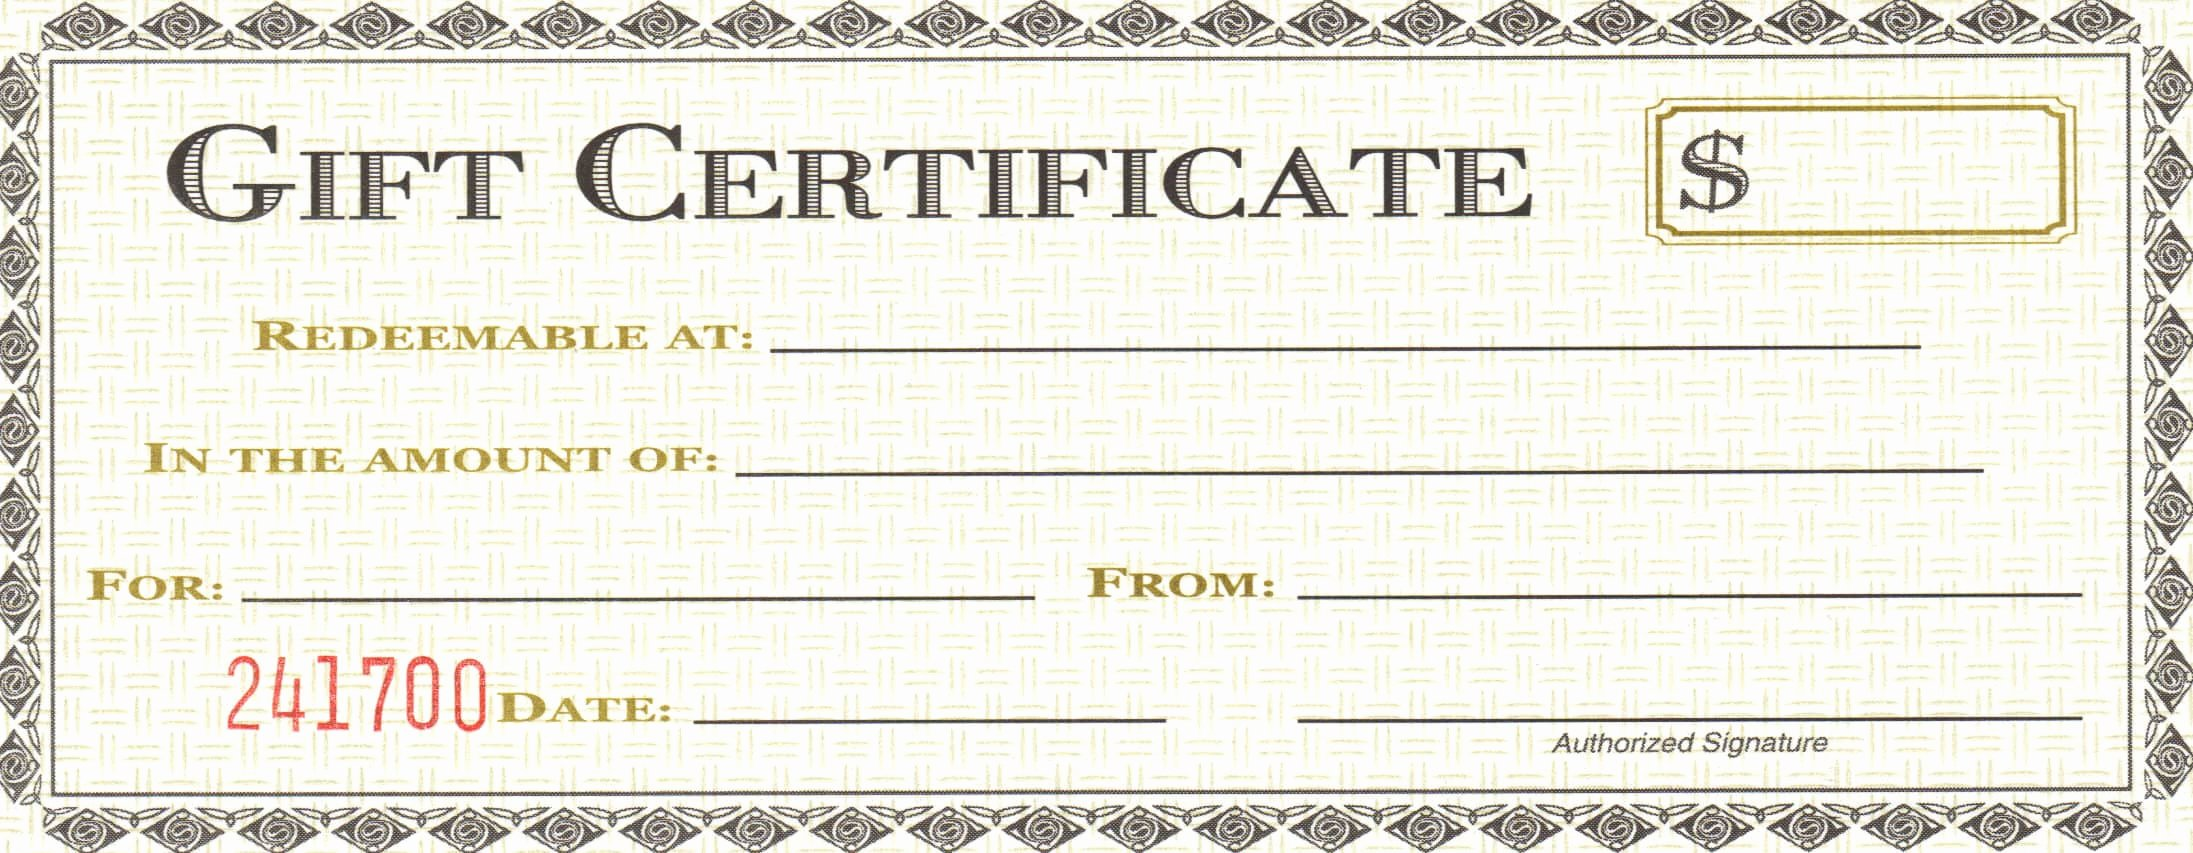 Gift Certificate Template Pages New 18 Gift Certificate Templates Excel Pdf formats